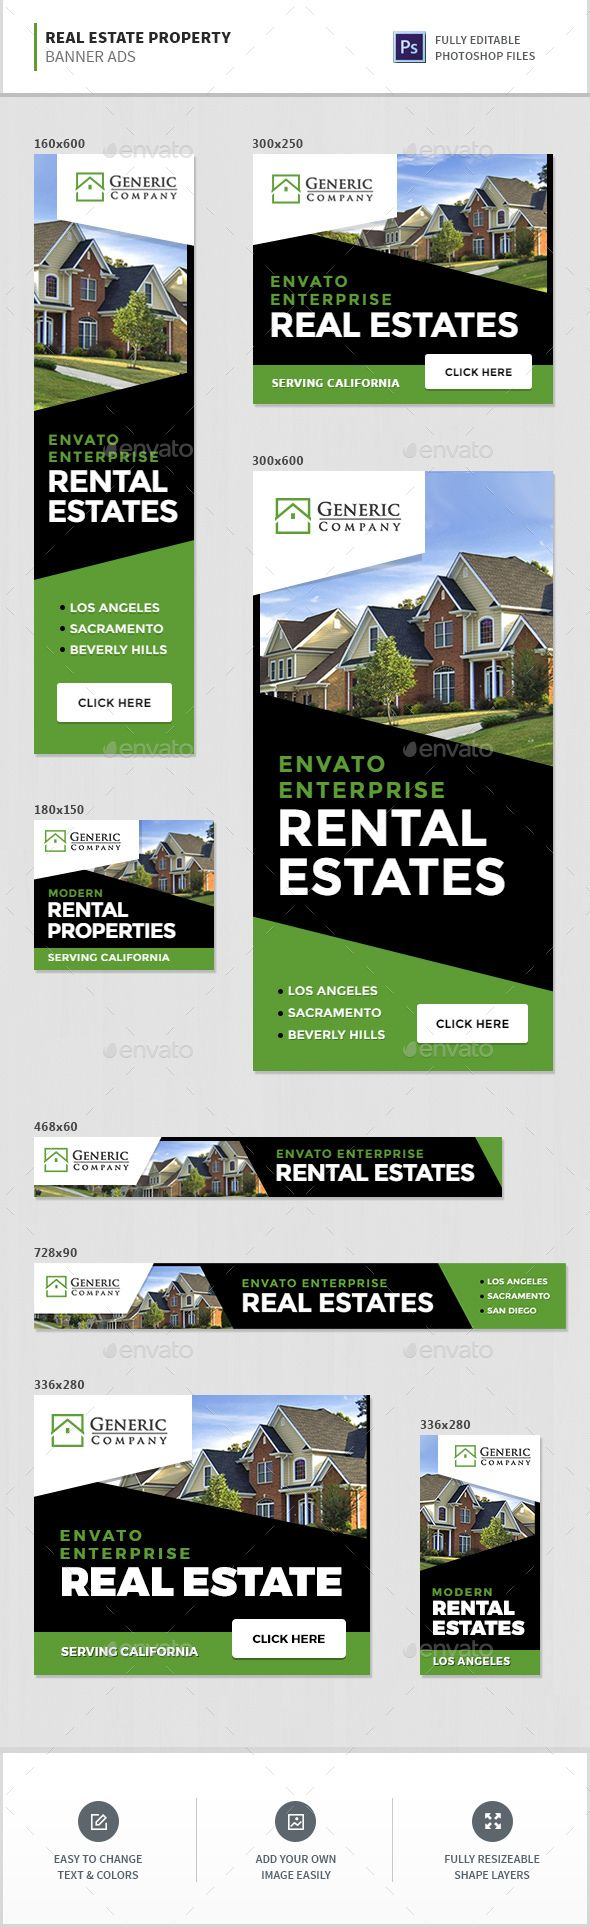 Real Estate Property Banner Ads  Banners Real Estate And Template